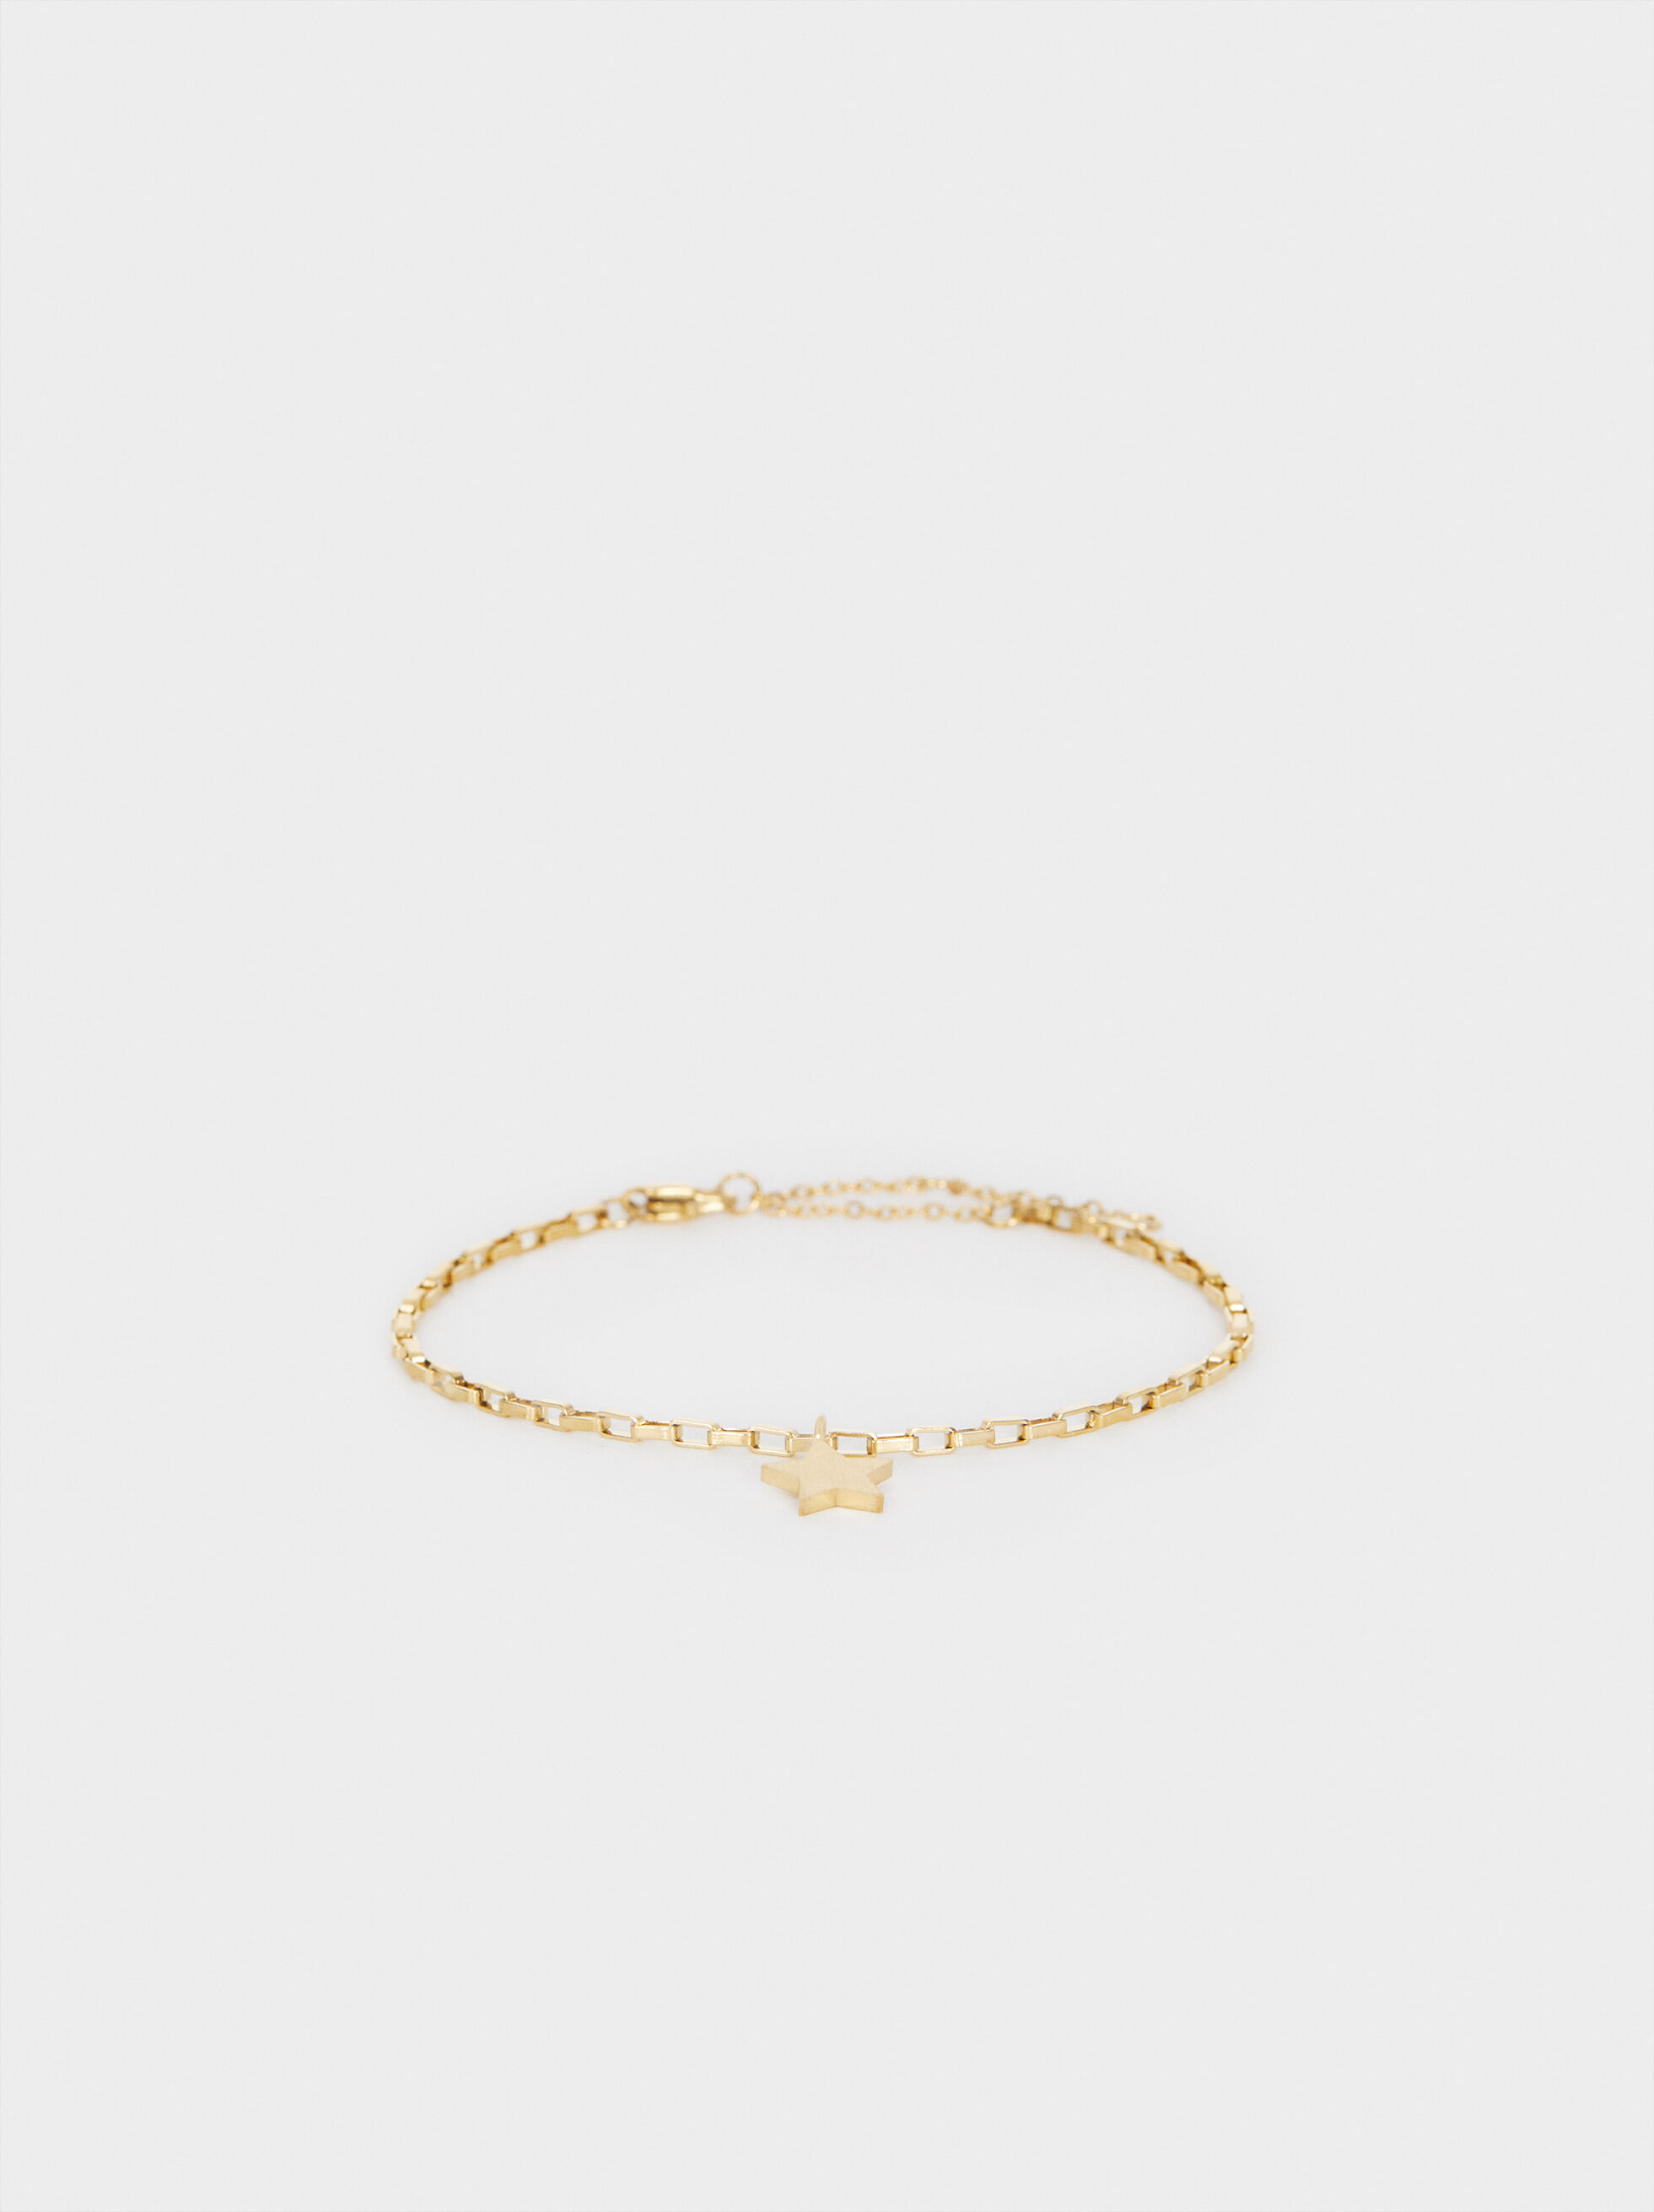 Gold-Toned Steel Bracelet With Star Charm, , hi-res